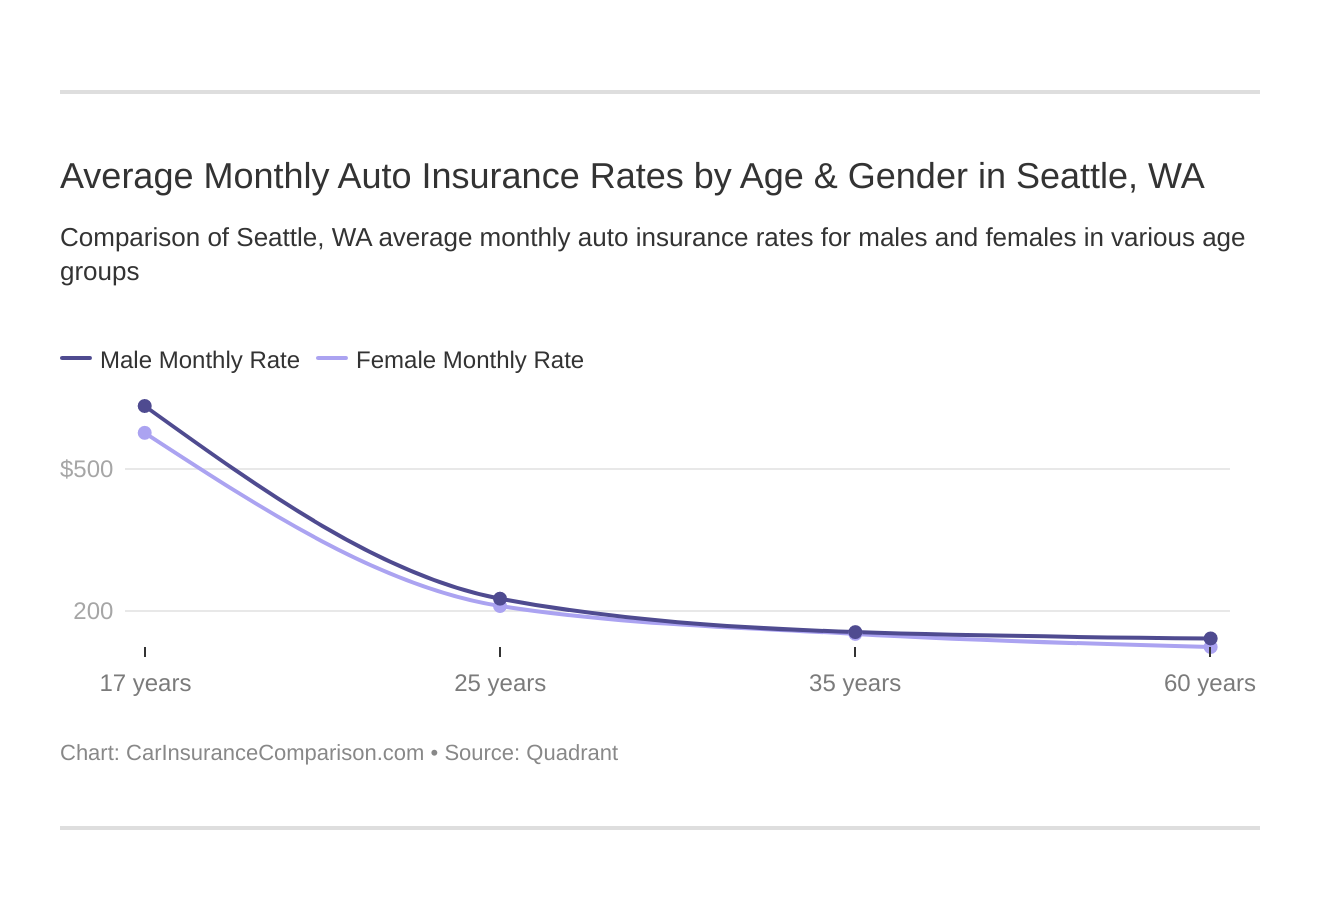 Average Monthly Auto Insurance Rates by Age & Gender in Seattle, WA